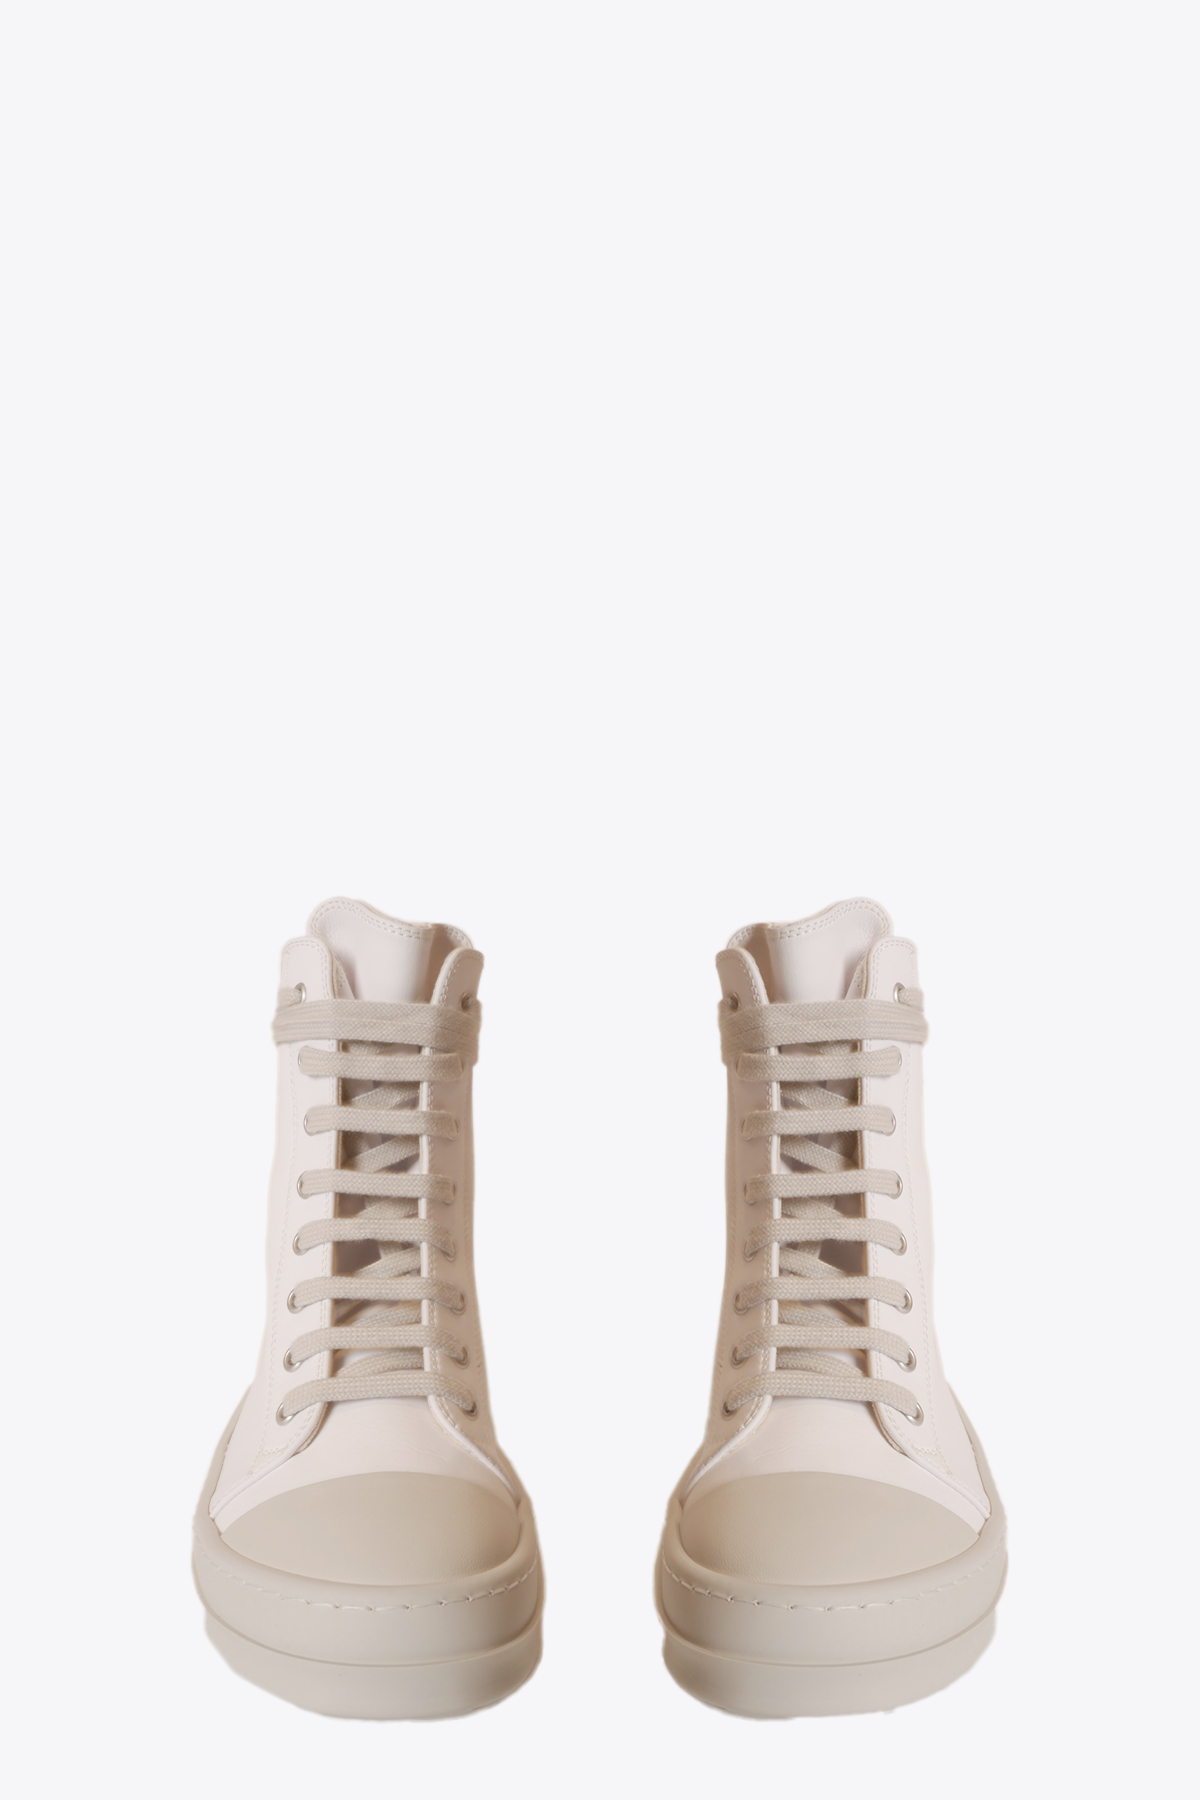 LACE-UP SNEAKERS RICK OWENS-DRKSHDW | 10000039 | DU20F1800 RUHP SNEAKERS11